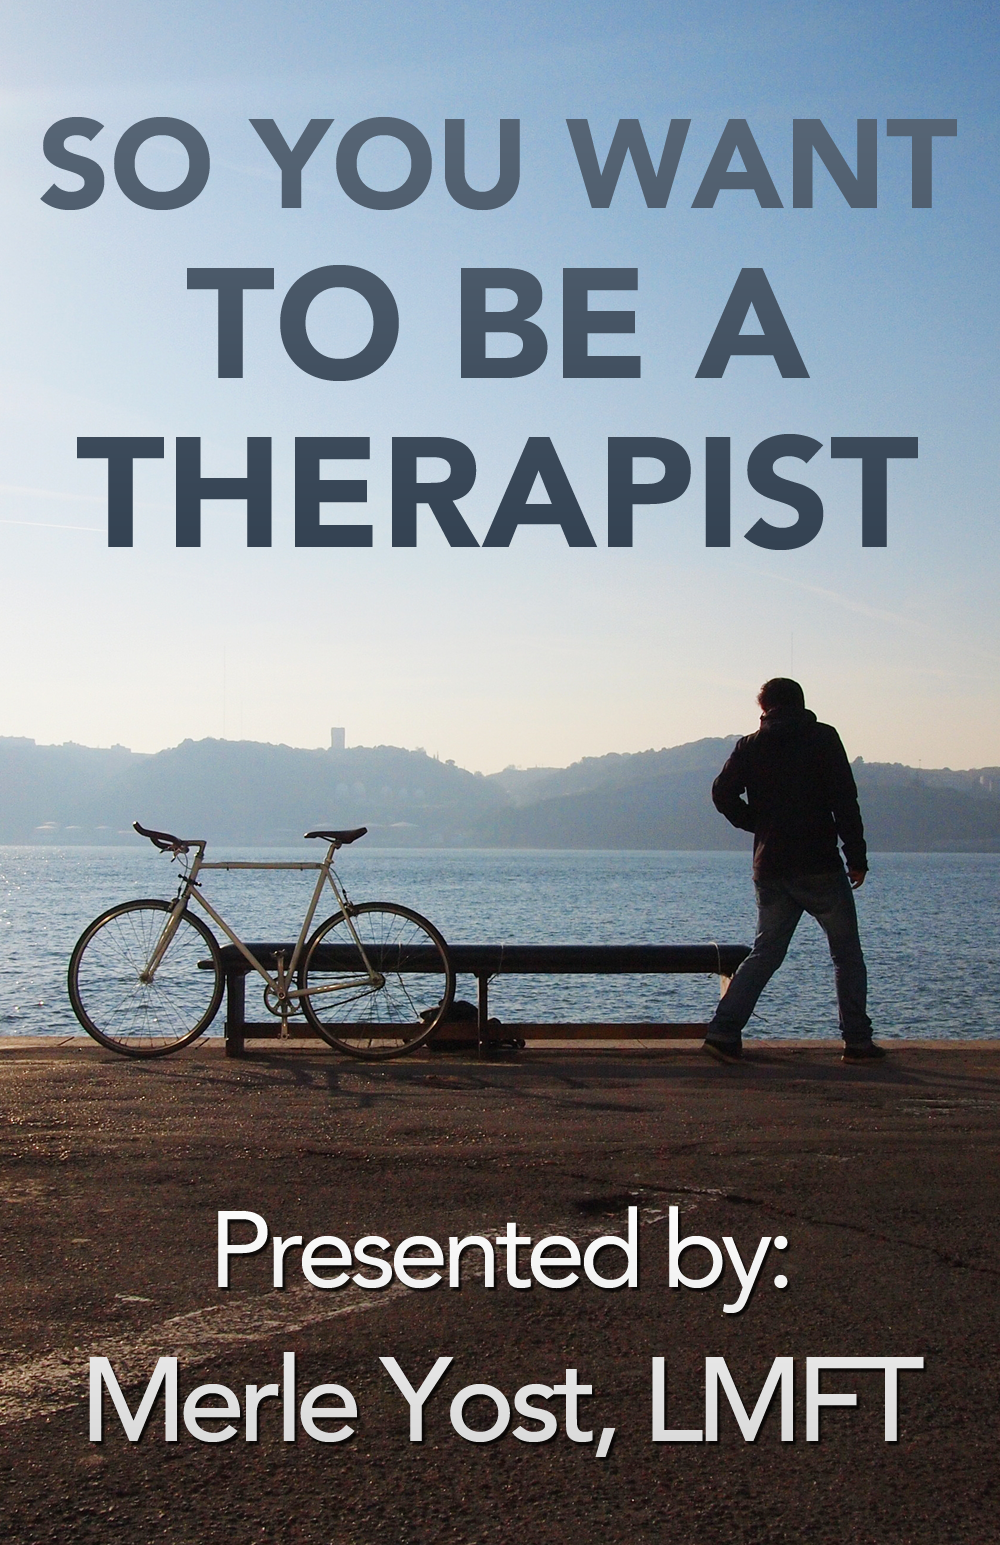 So You Want to be a Therapist Poster